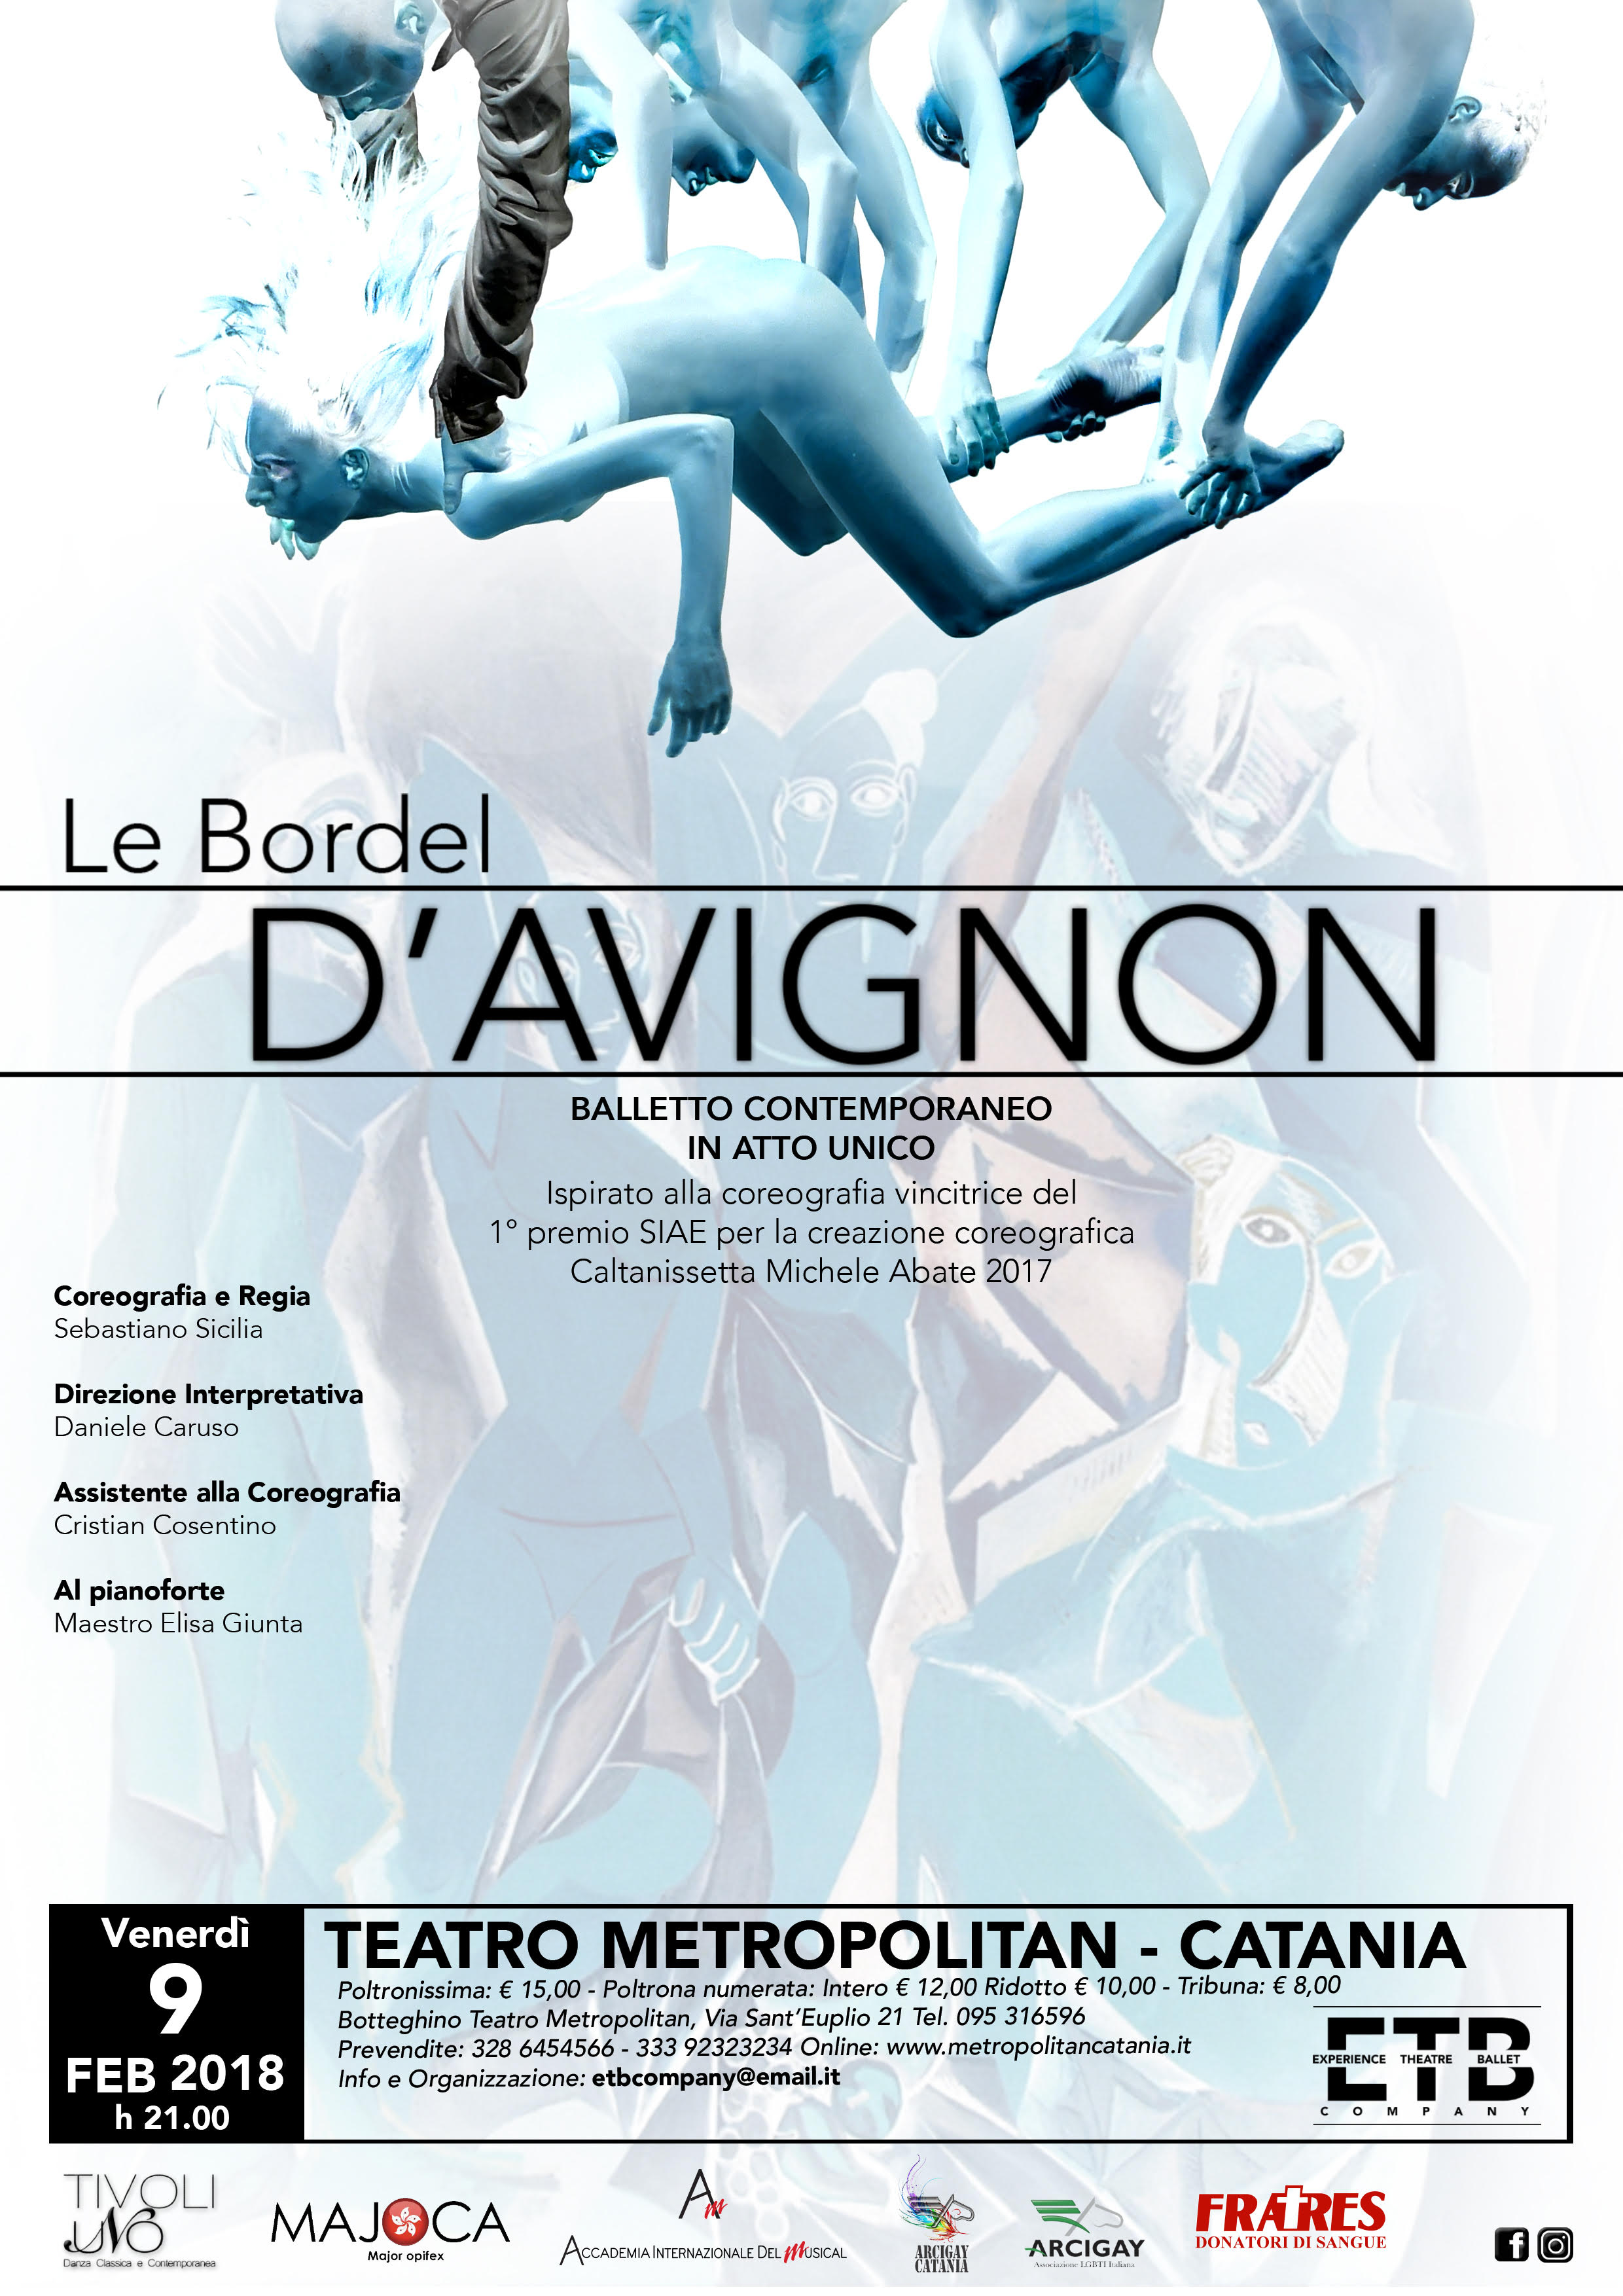 LE BORDEL D'AVIGNON - Balletto contemporaneo